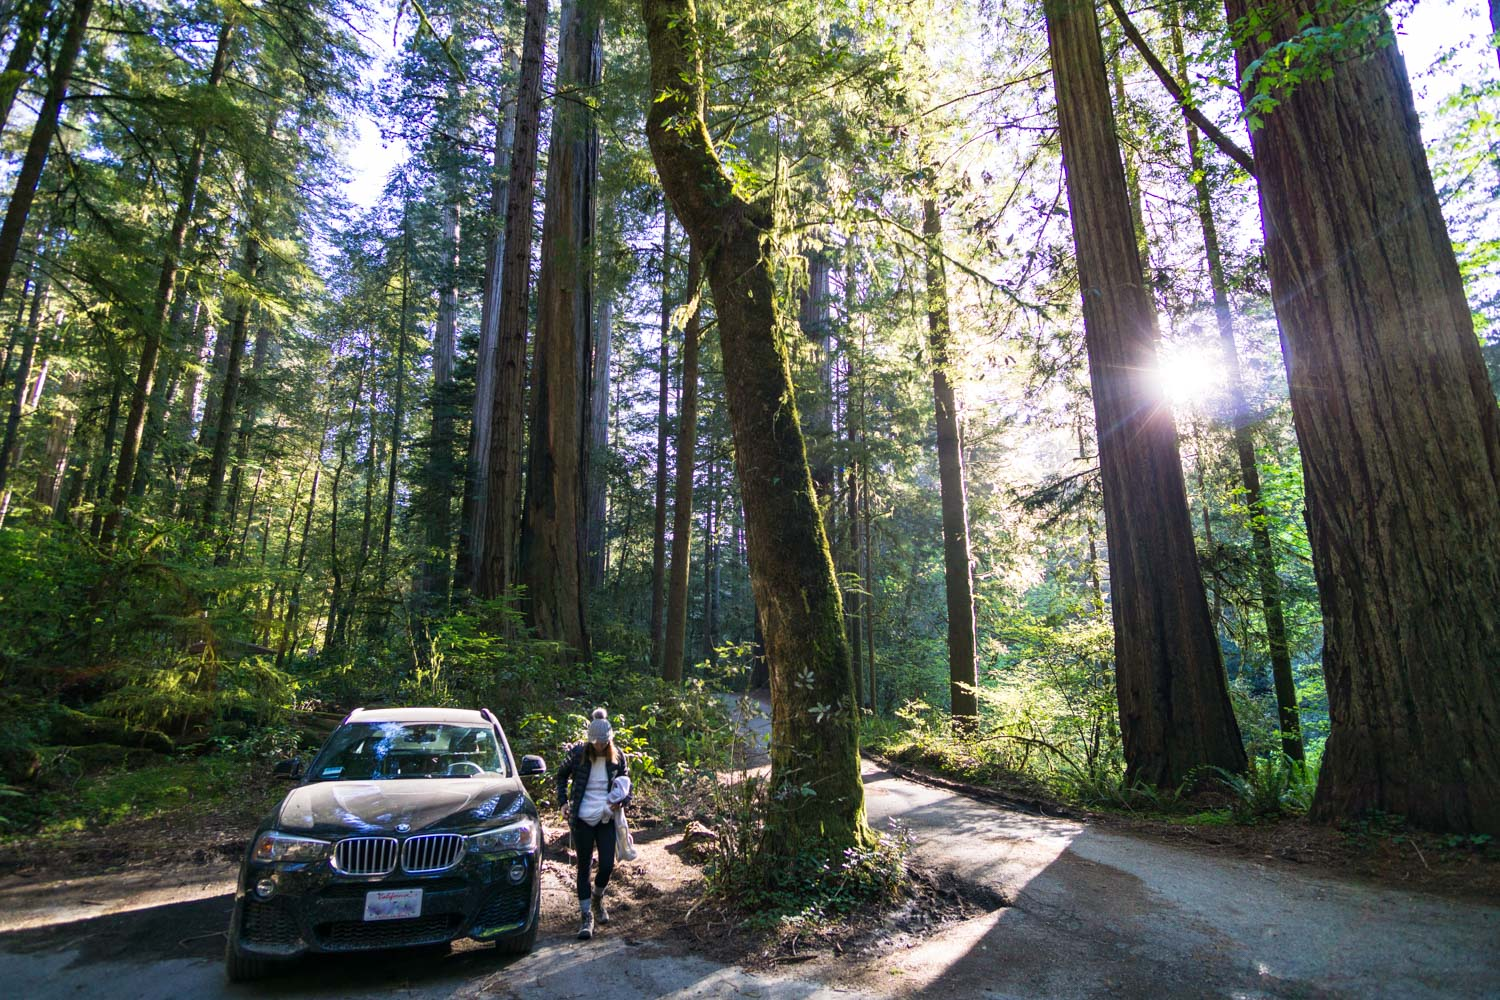 The parking lot at the top of the redwood grove